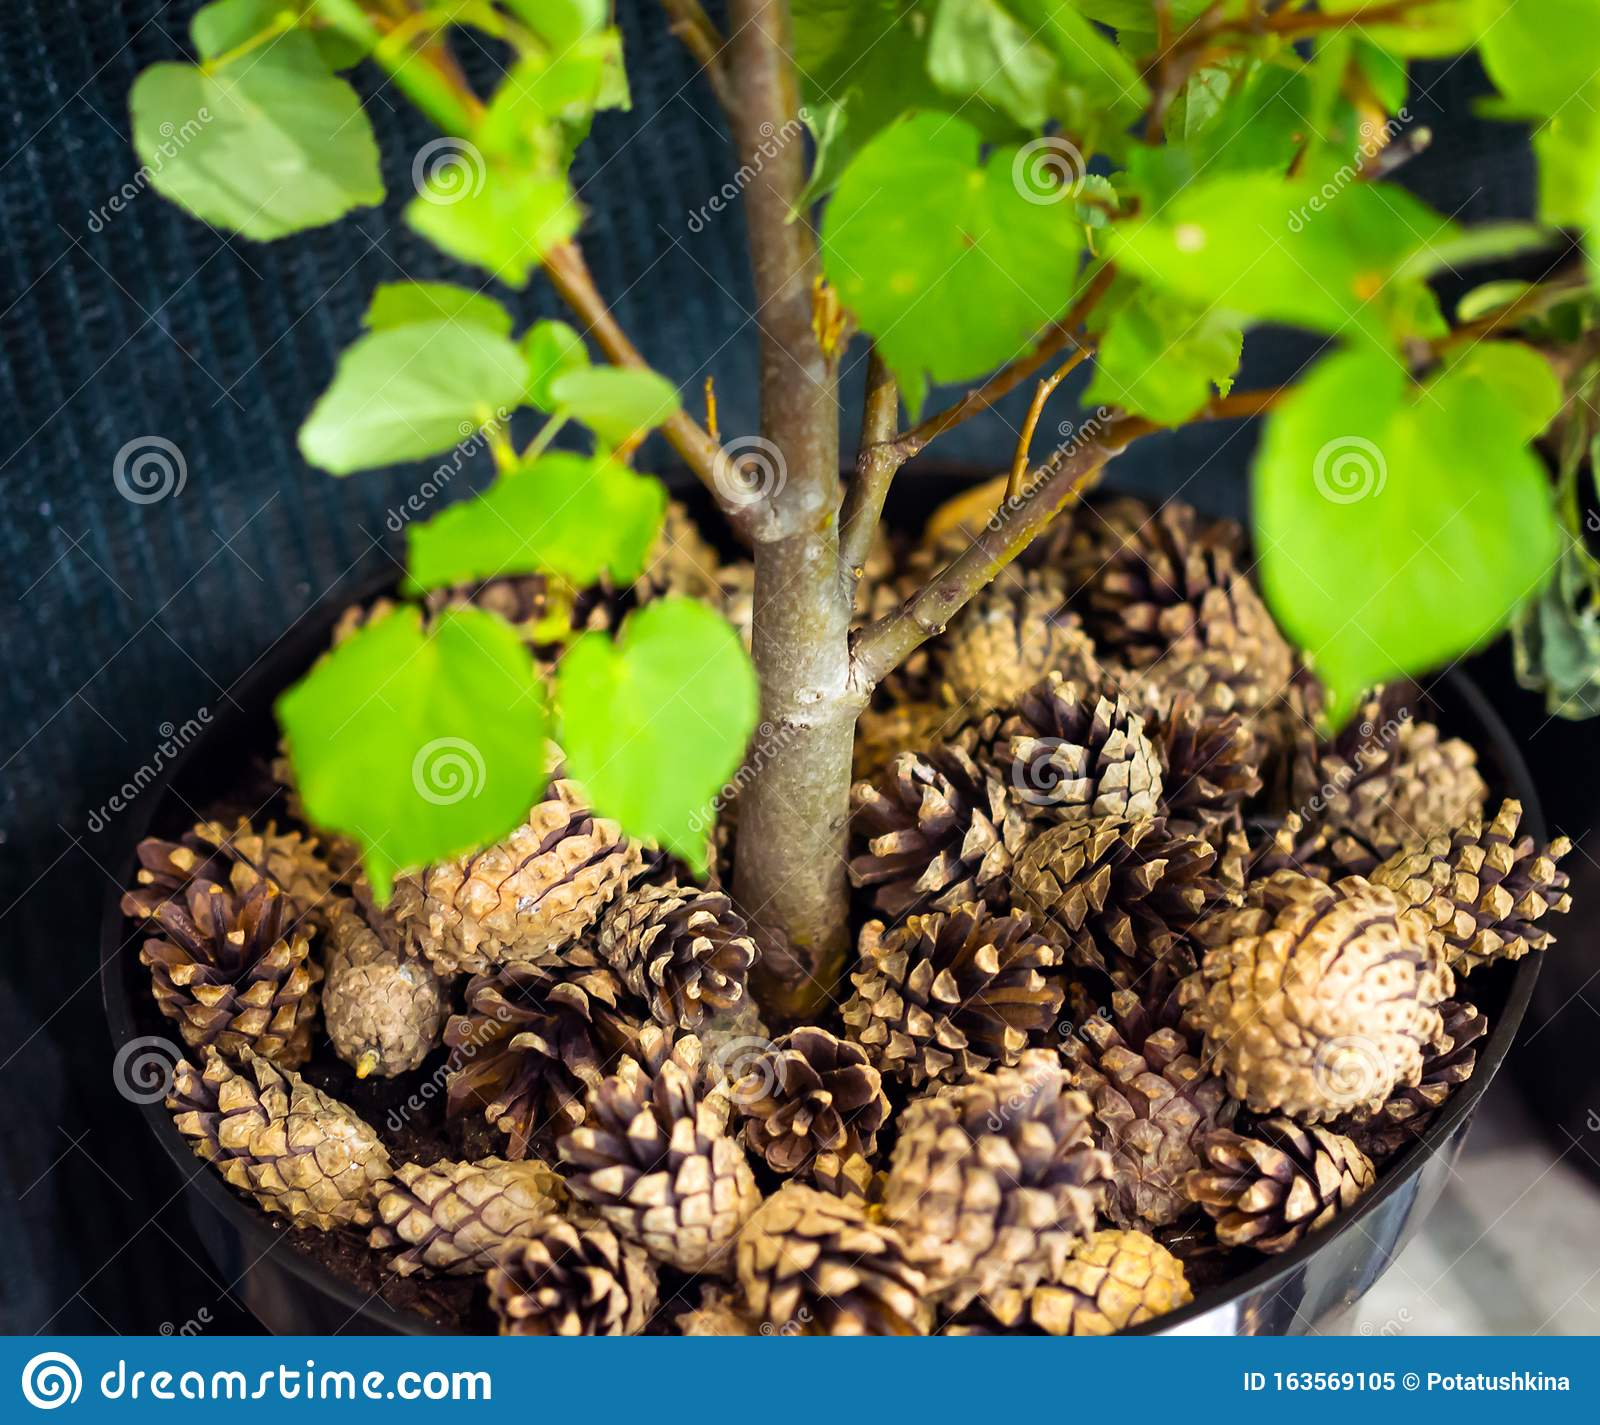 Mulching A Young Tree With Pine Cones Stock Image Image Of